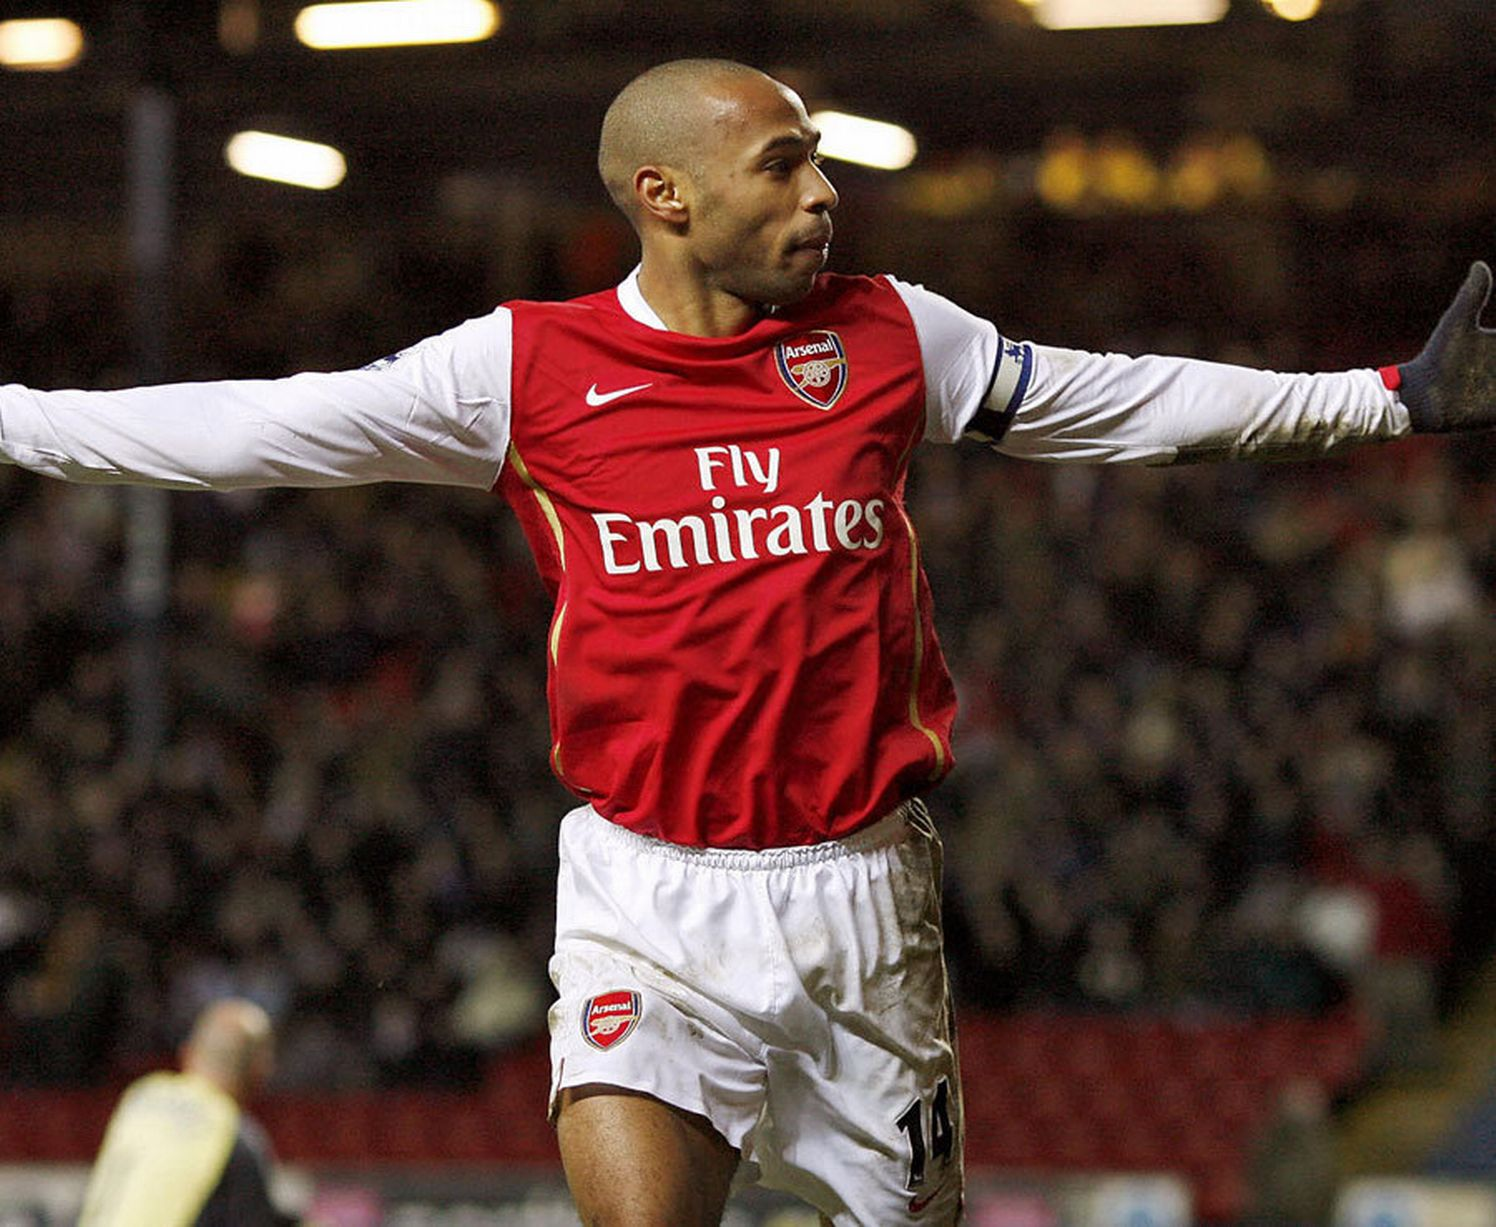 MOST FREE KICKS SCORED IN PL HISTORY: TOP 10